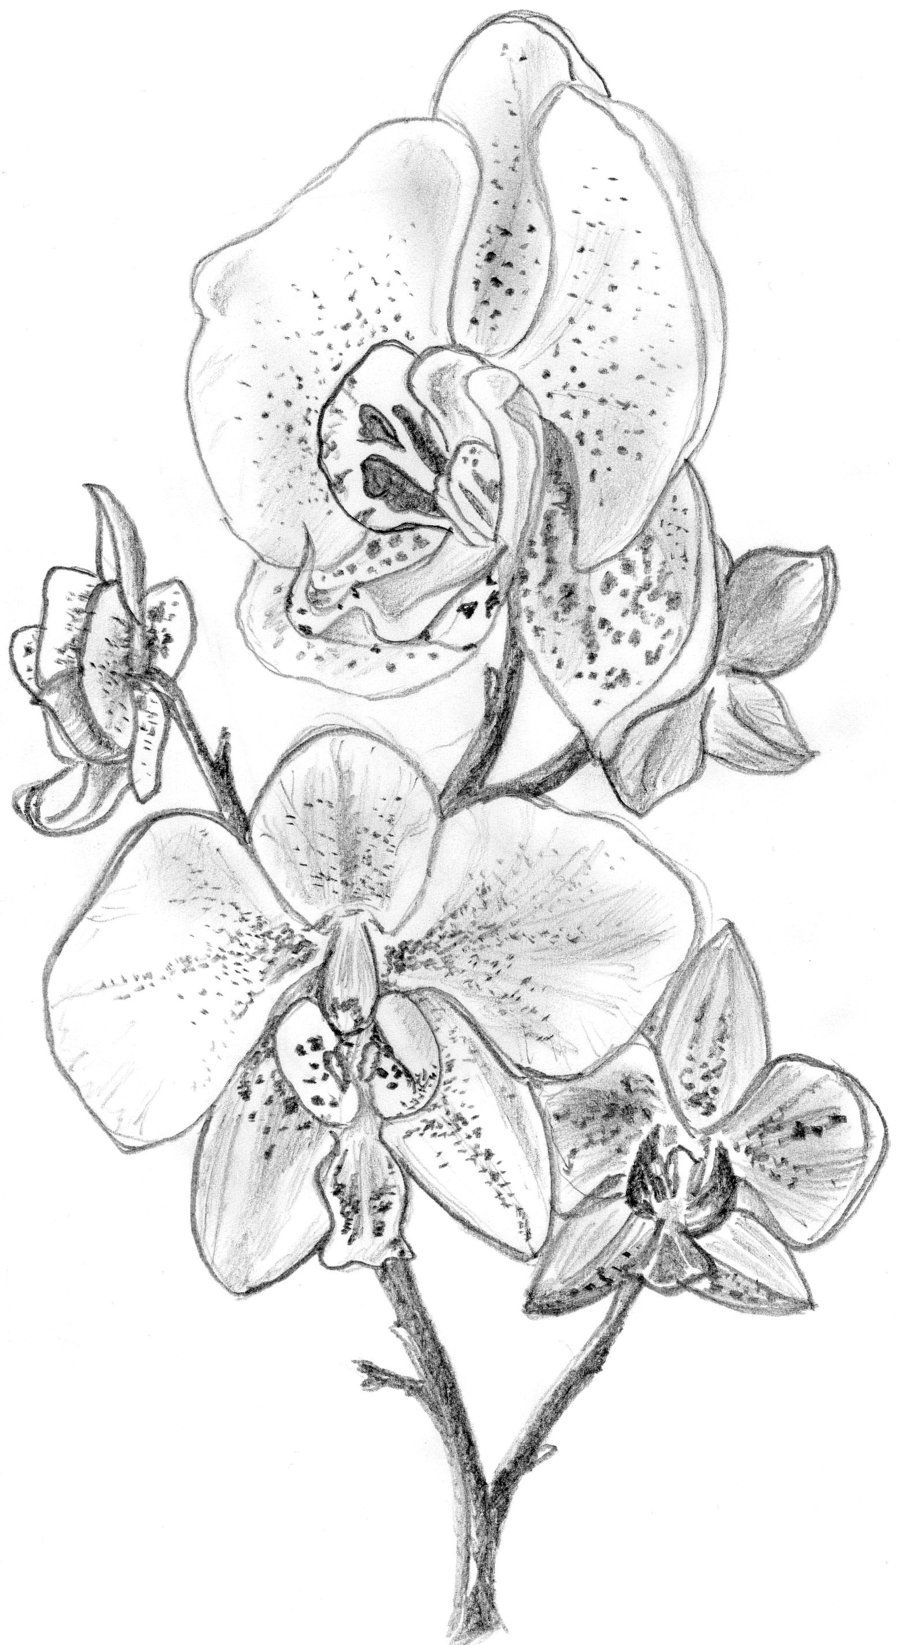 Uncategorized Orchid Drawings orchid sketches by irongarlic traditional art drawings other 2010 2013